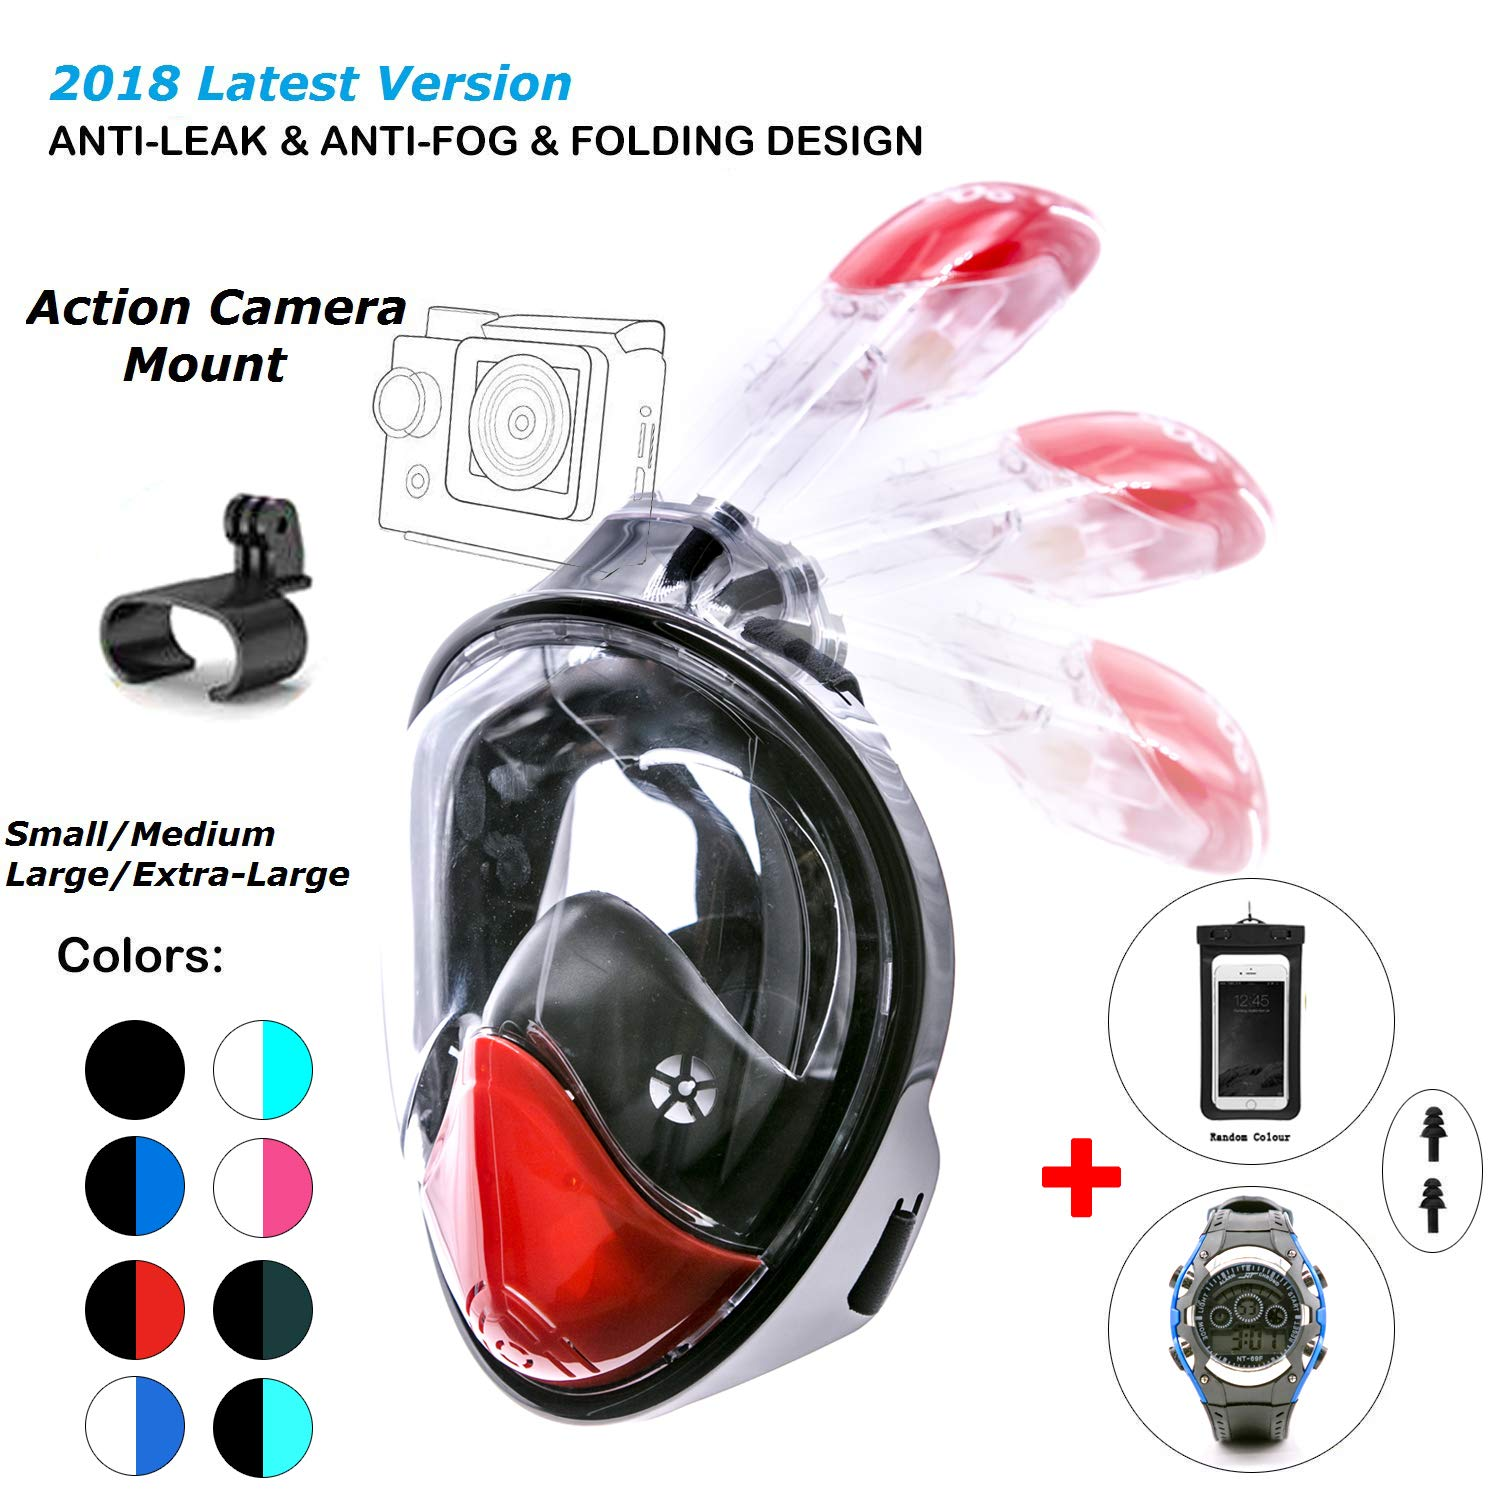 180° Snorkel Mask View for Adults and Youth. Full Face Free Breathing Folding Design.[Free Bonuses] Cell Phone Universal Waterproof Case and 30m Waterproof Watch (Black&Red, Small/Medium)